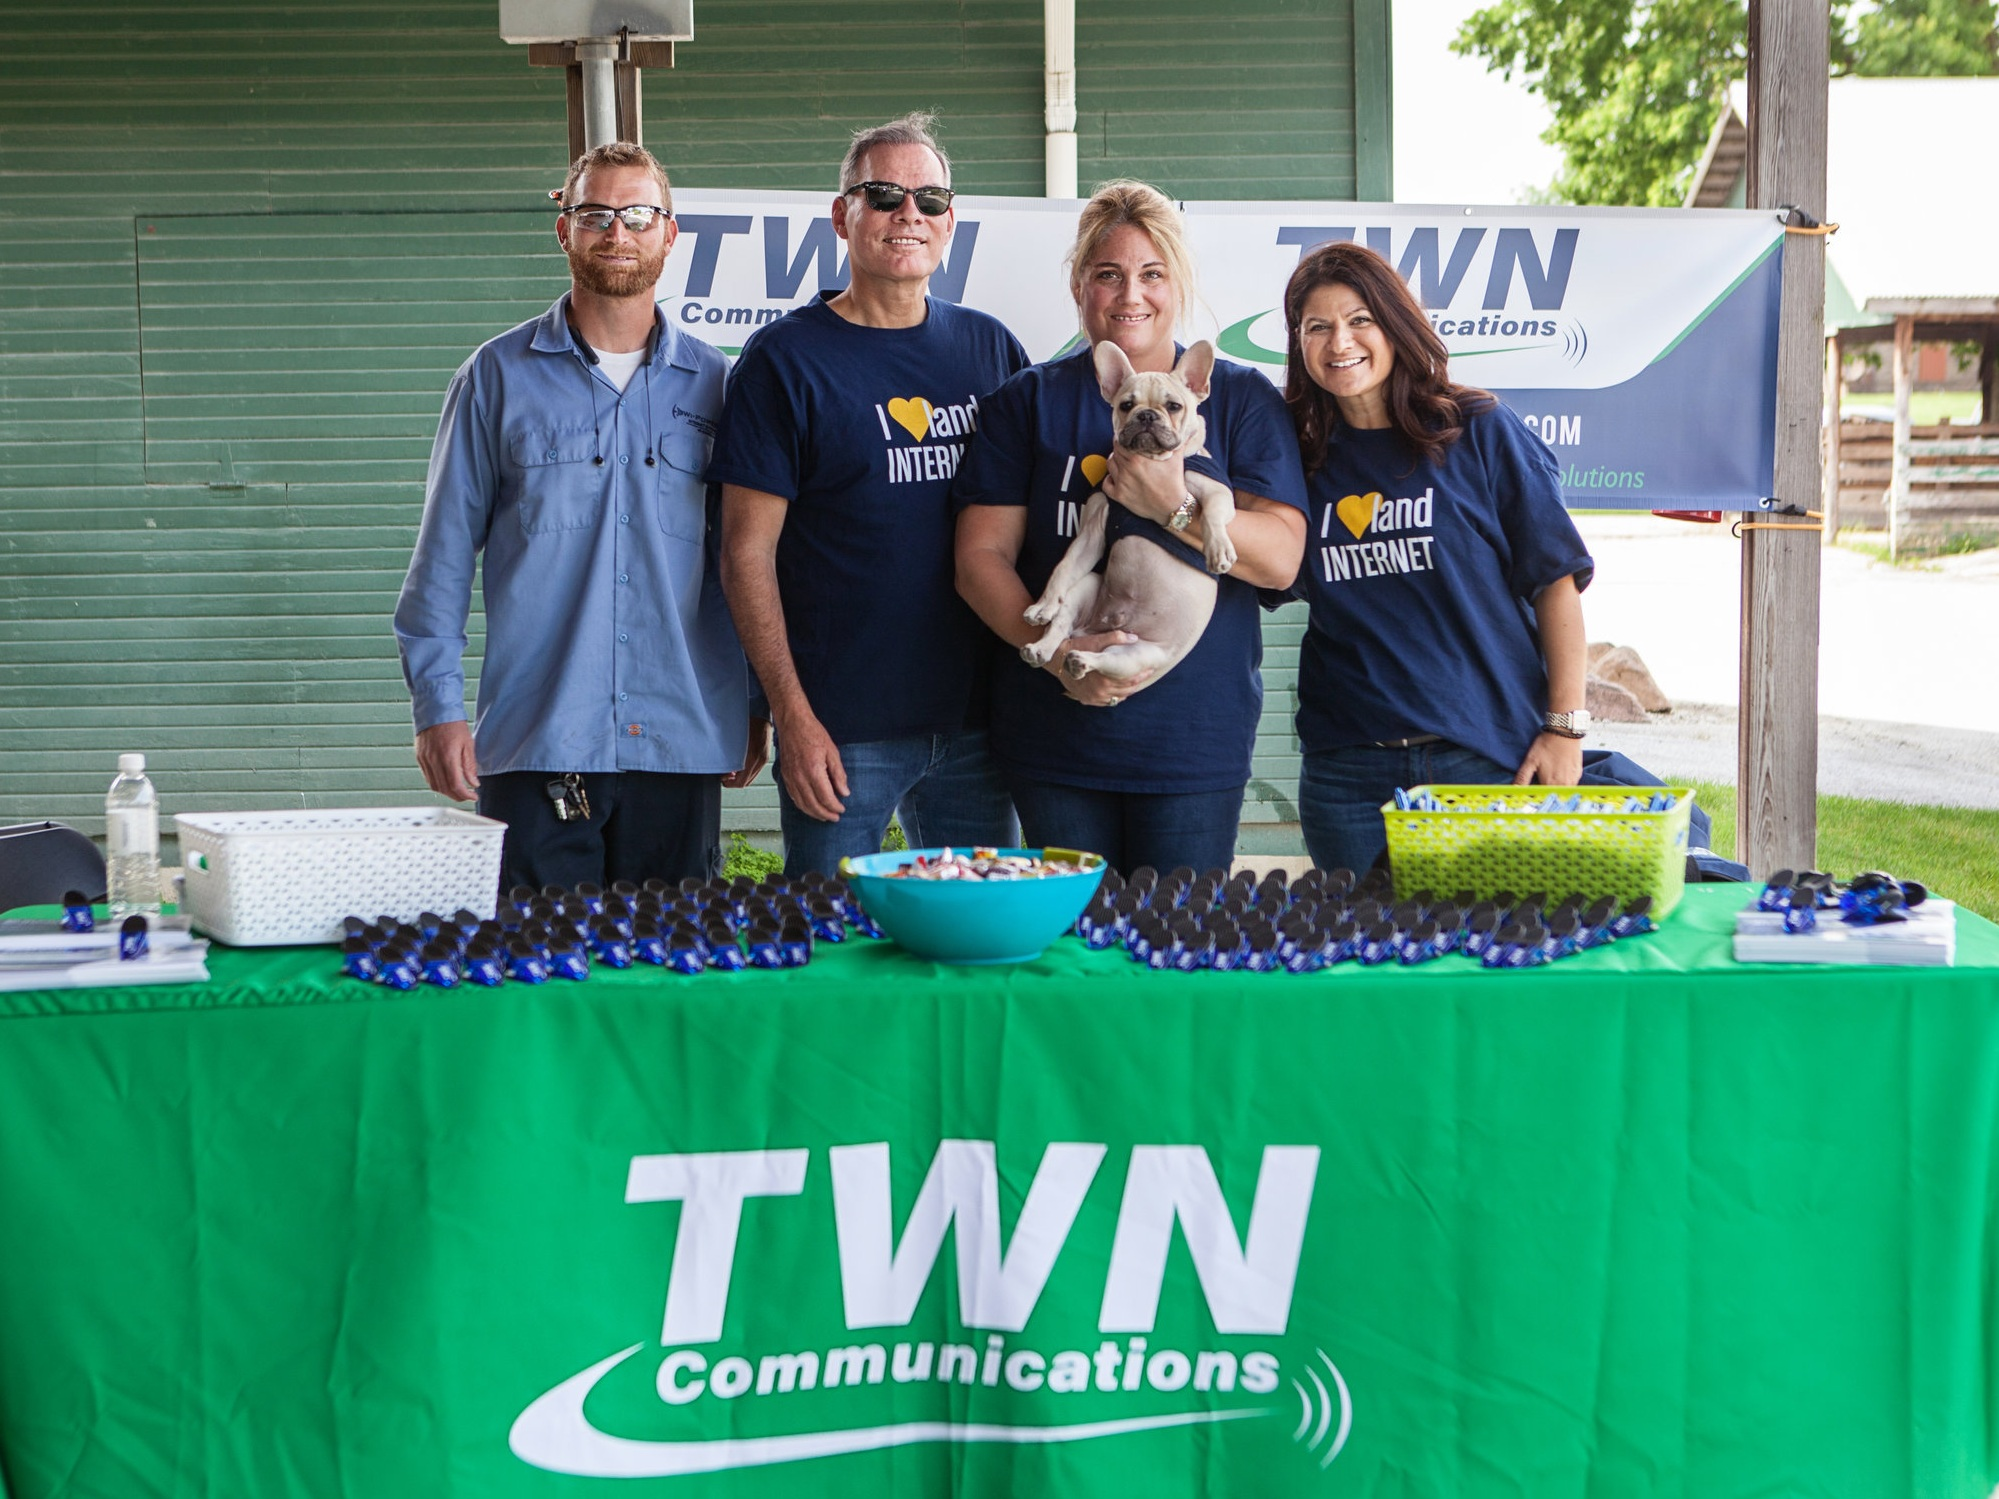 TWN-communications-HREMC-annual-meeting.jpg